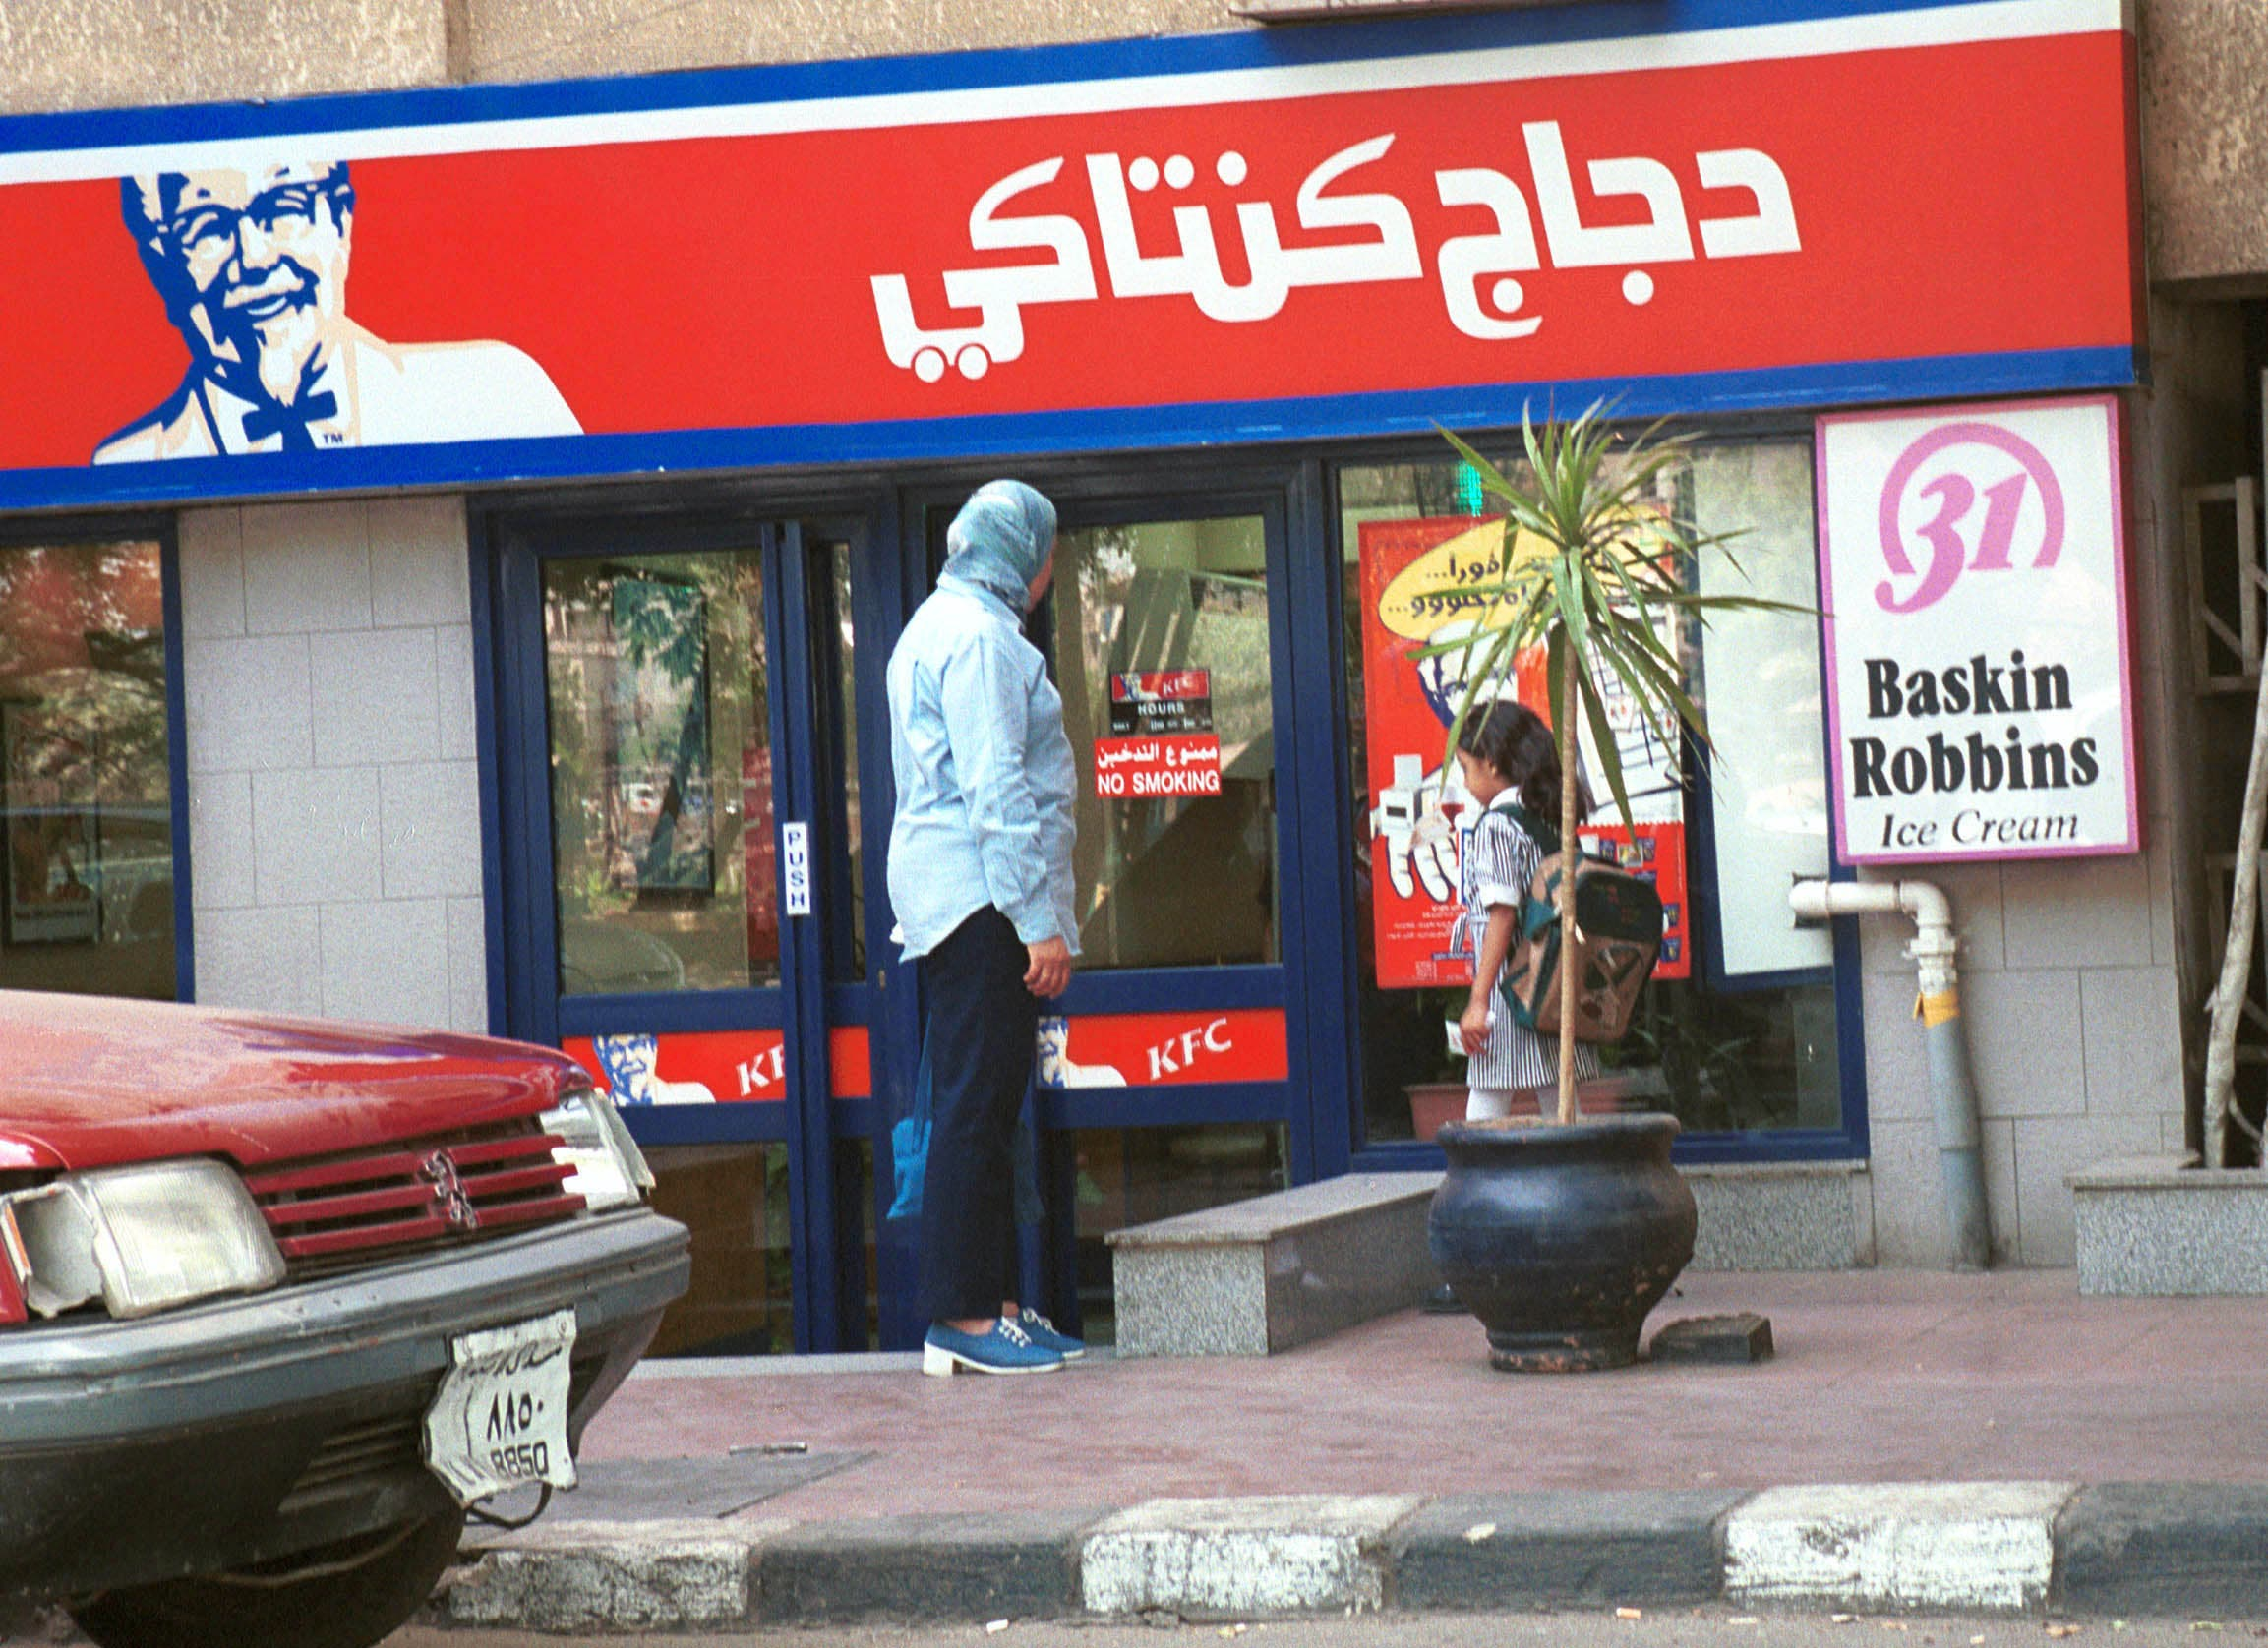 KFC is a staid favorite in Egypt: Arab teen tastes and fashion appear not be a far cry from teen fads of the 80s, nor do these brand choices reflect a degree of sophistication that might be expected from exposure to more options. Sophistication it would seem is the preserve of yesterday not tomorrow.